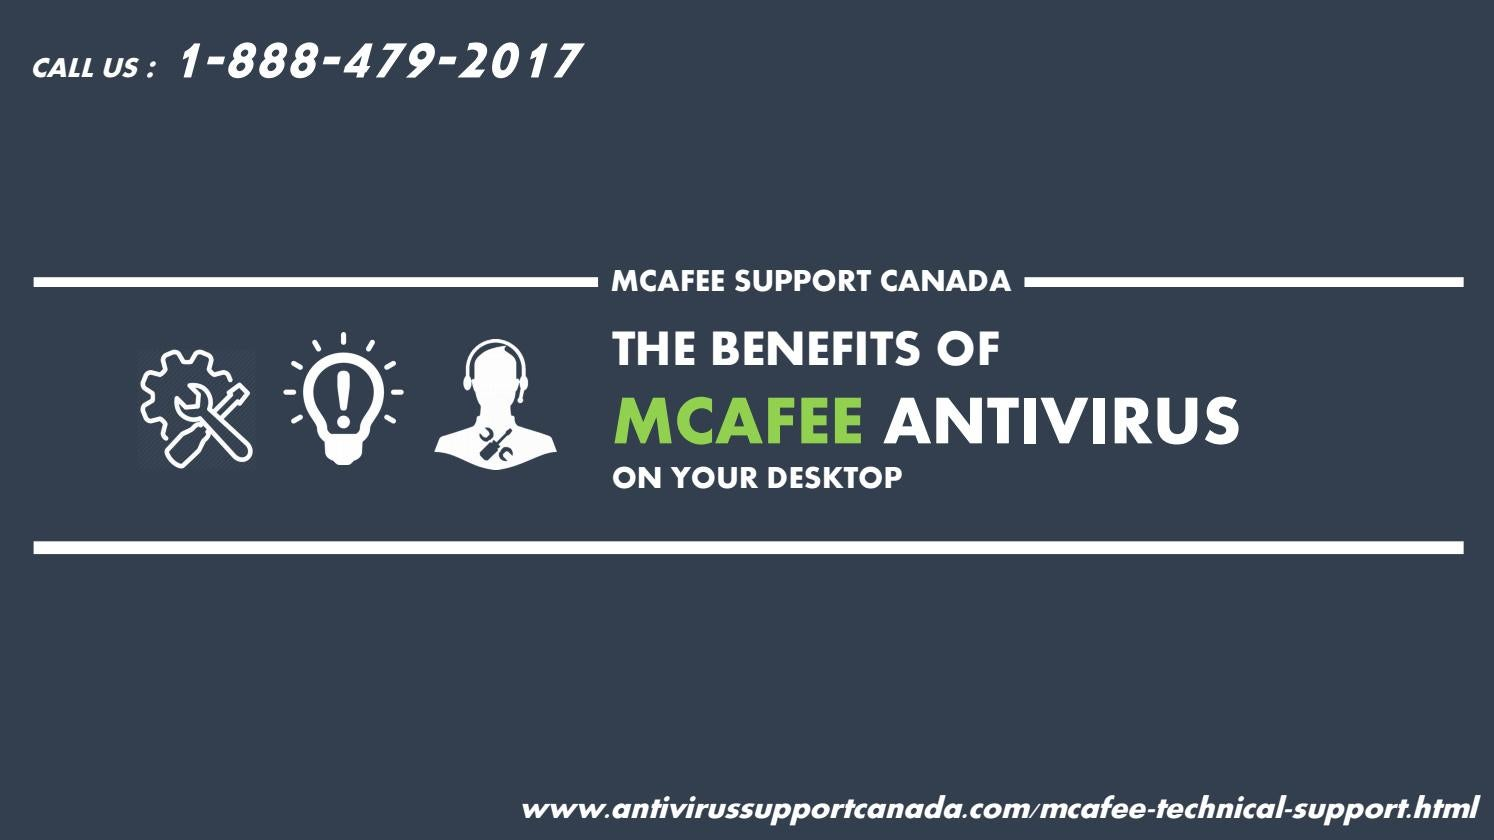 THE BENEFITS OF MCAFEE ANTIVIRUS ON YOUR MACHINE   McAfee Support